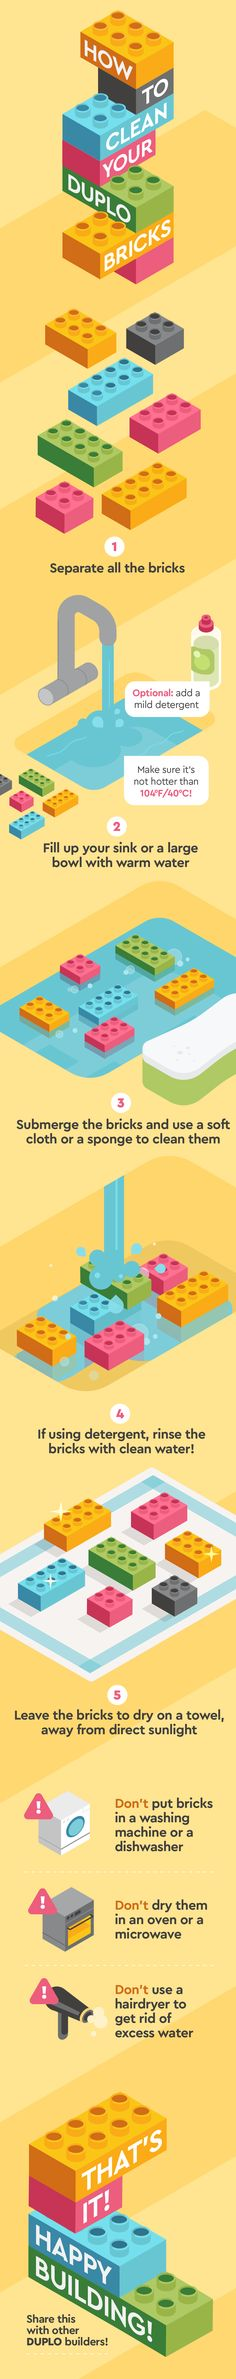 The official LEGO guidelines on how to clean your LEGO DUPLO bricks to ensure you don't damage them in the process! Lego Therapy, Lego Display, Toddler Humor, Home Organisation, Lego Instructions, Learning Through Play, Lego Building, Lego Duplo, Lego Brick